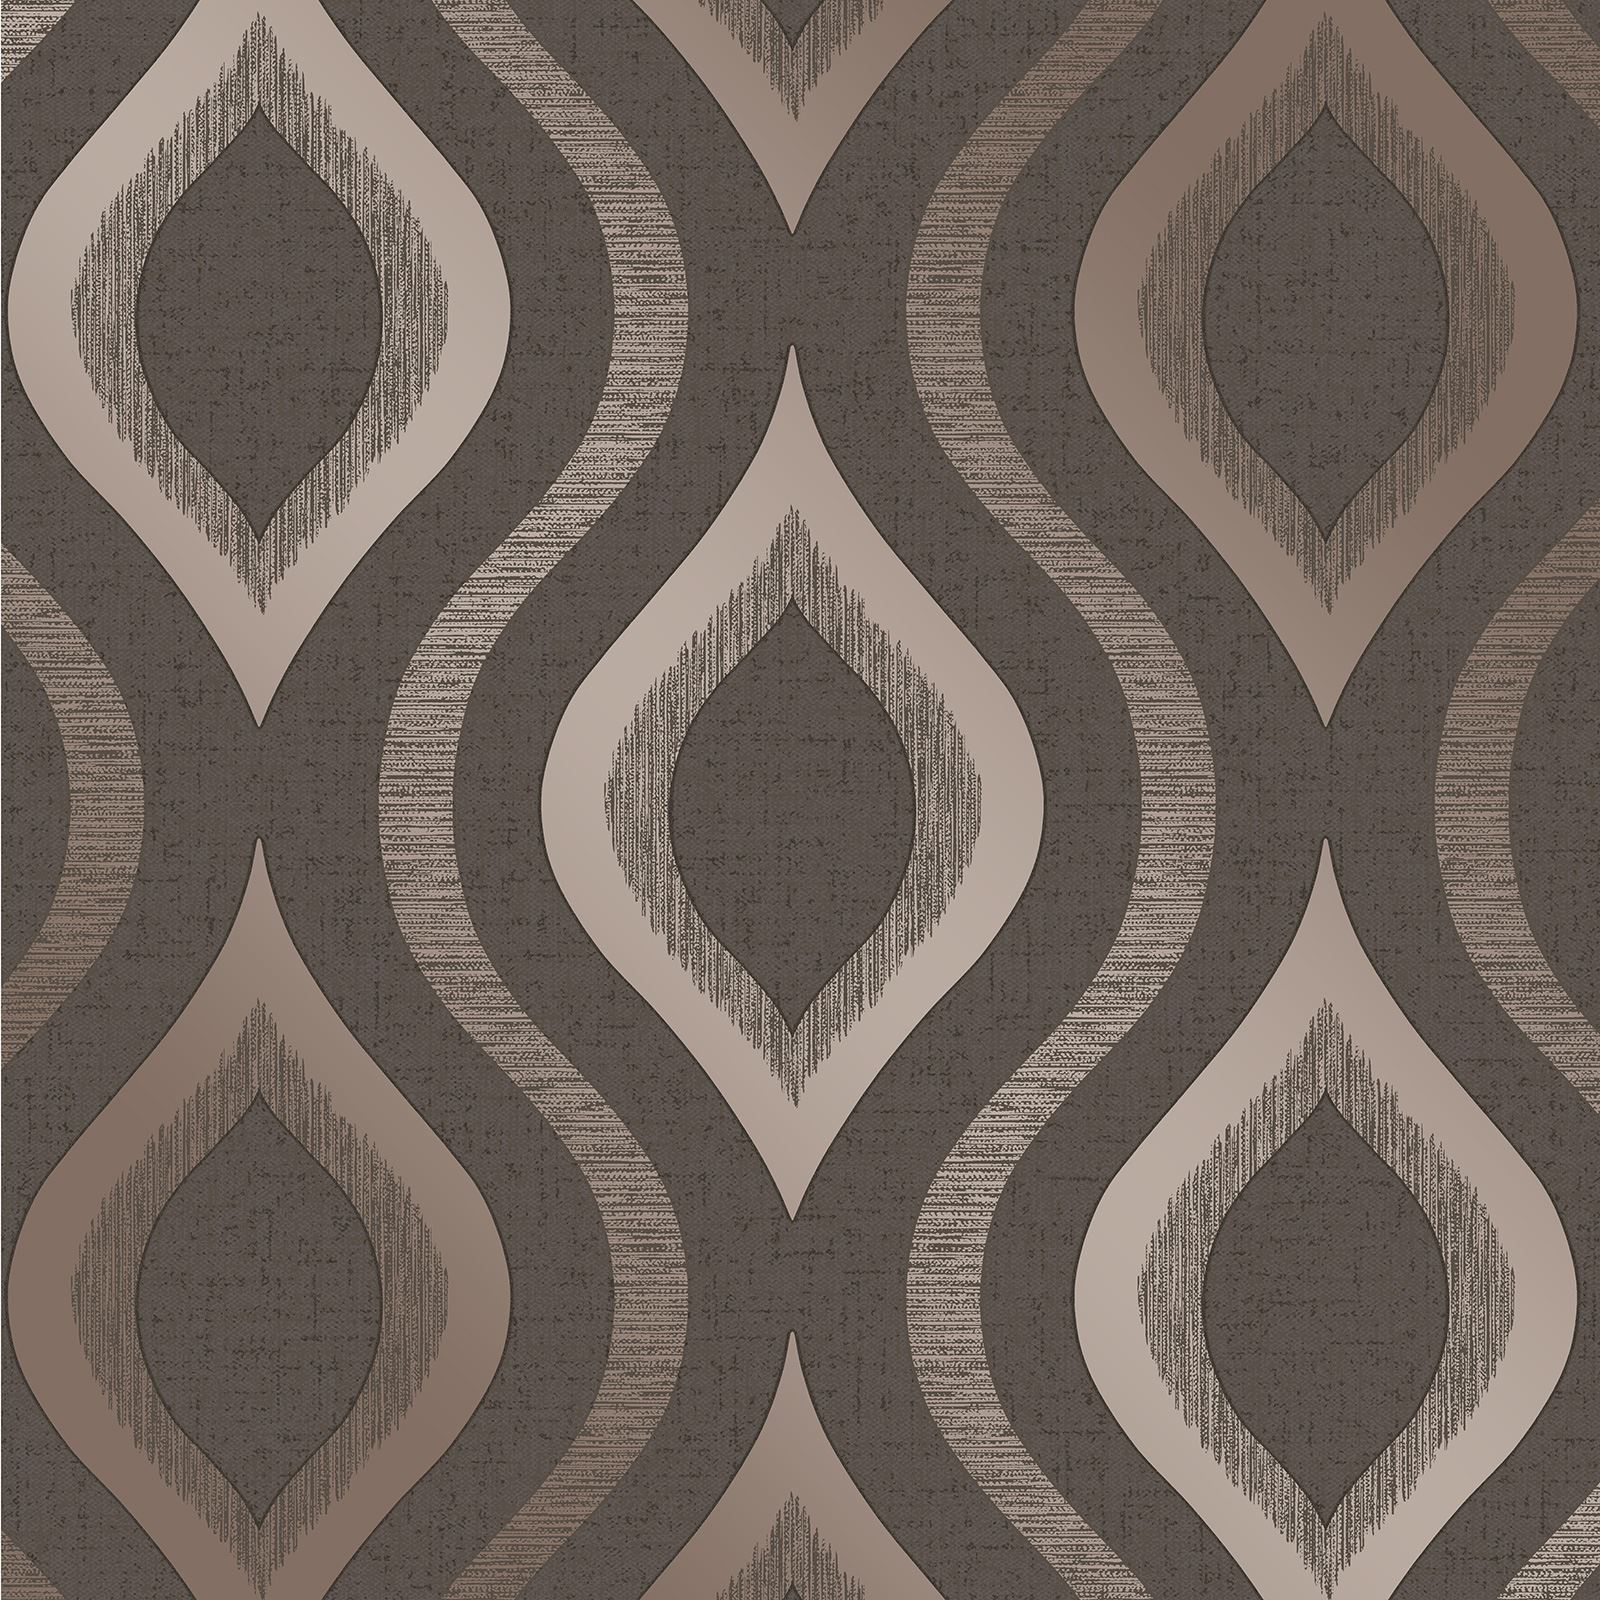 Fine Decor Quartz Geometric Wallpaper Rose Gold Silver Gold Pewter